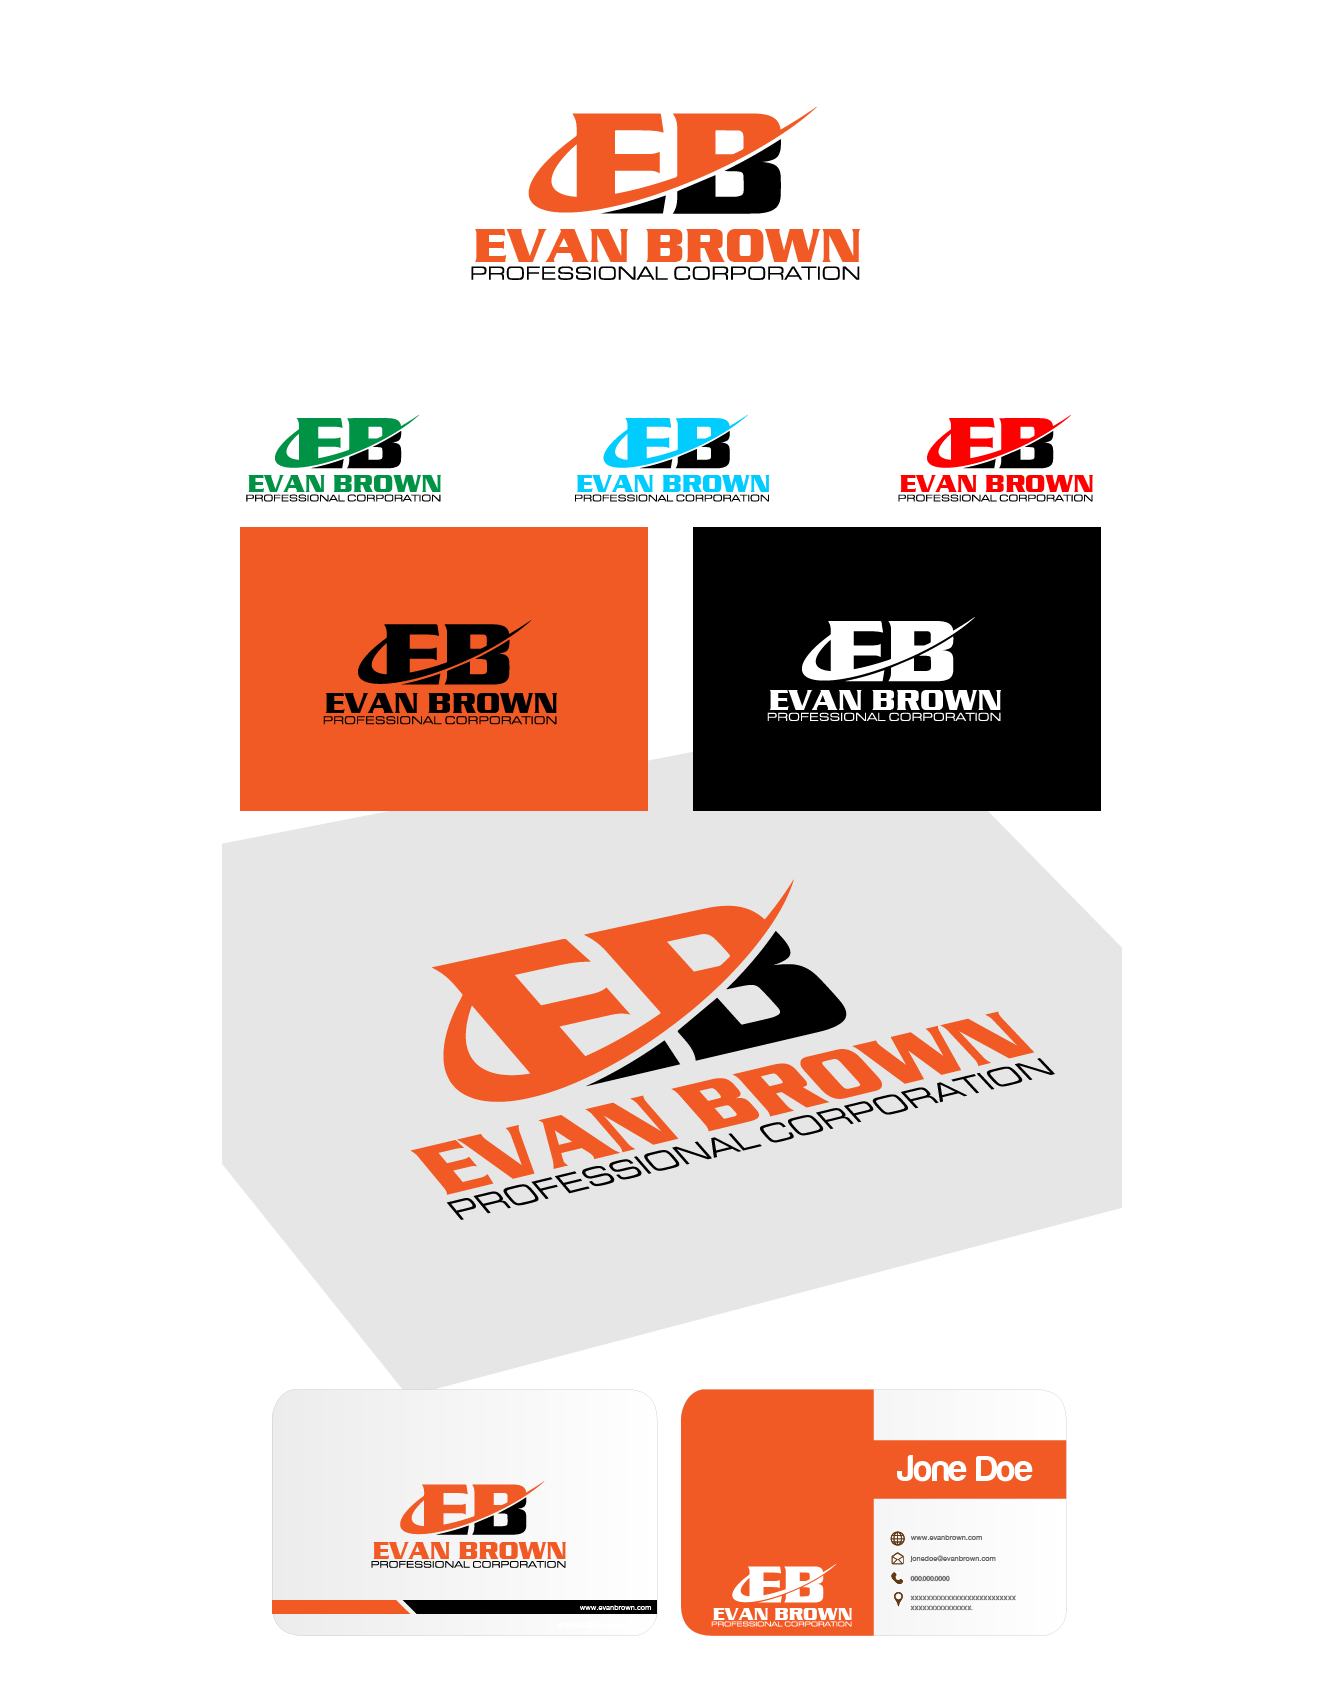 Logo Design by Private User - Entry No. 180 in the Logo Design Contest Inspiring Logo Design for Evan Brown Professional Corporation.